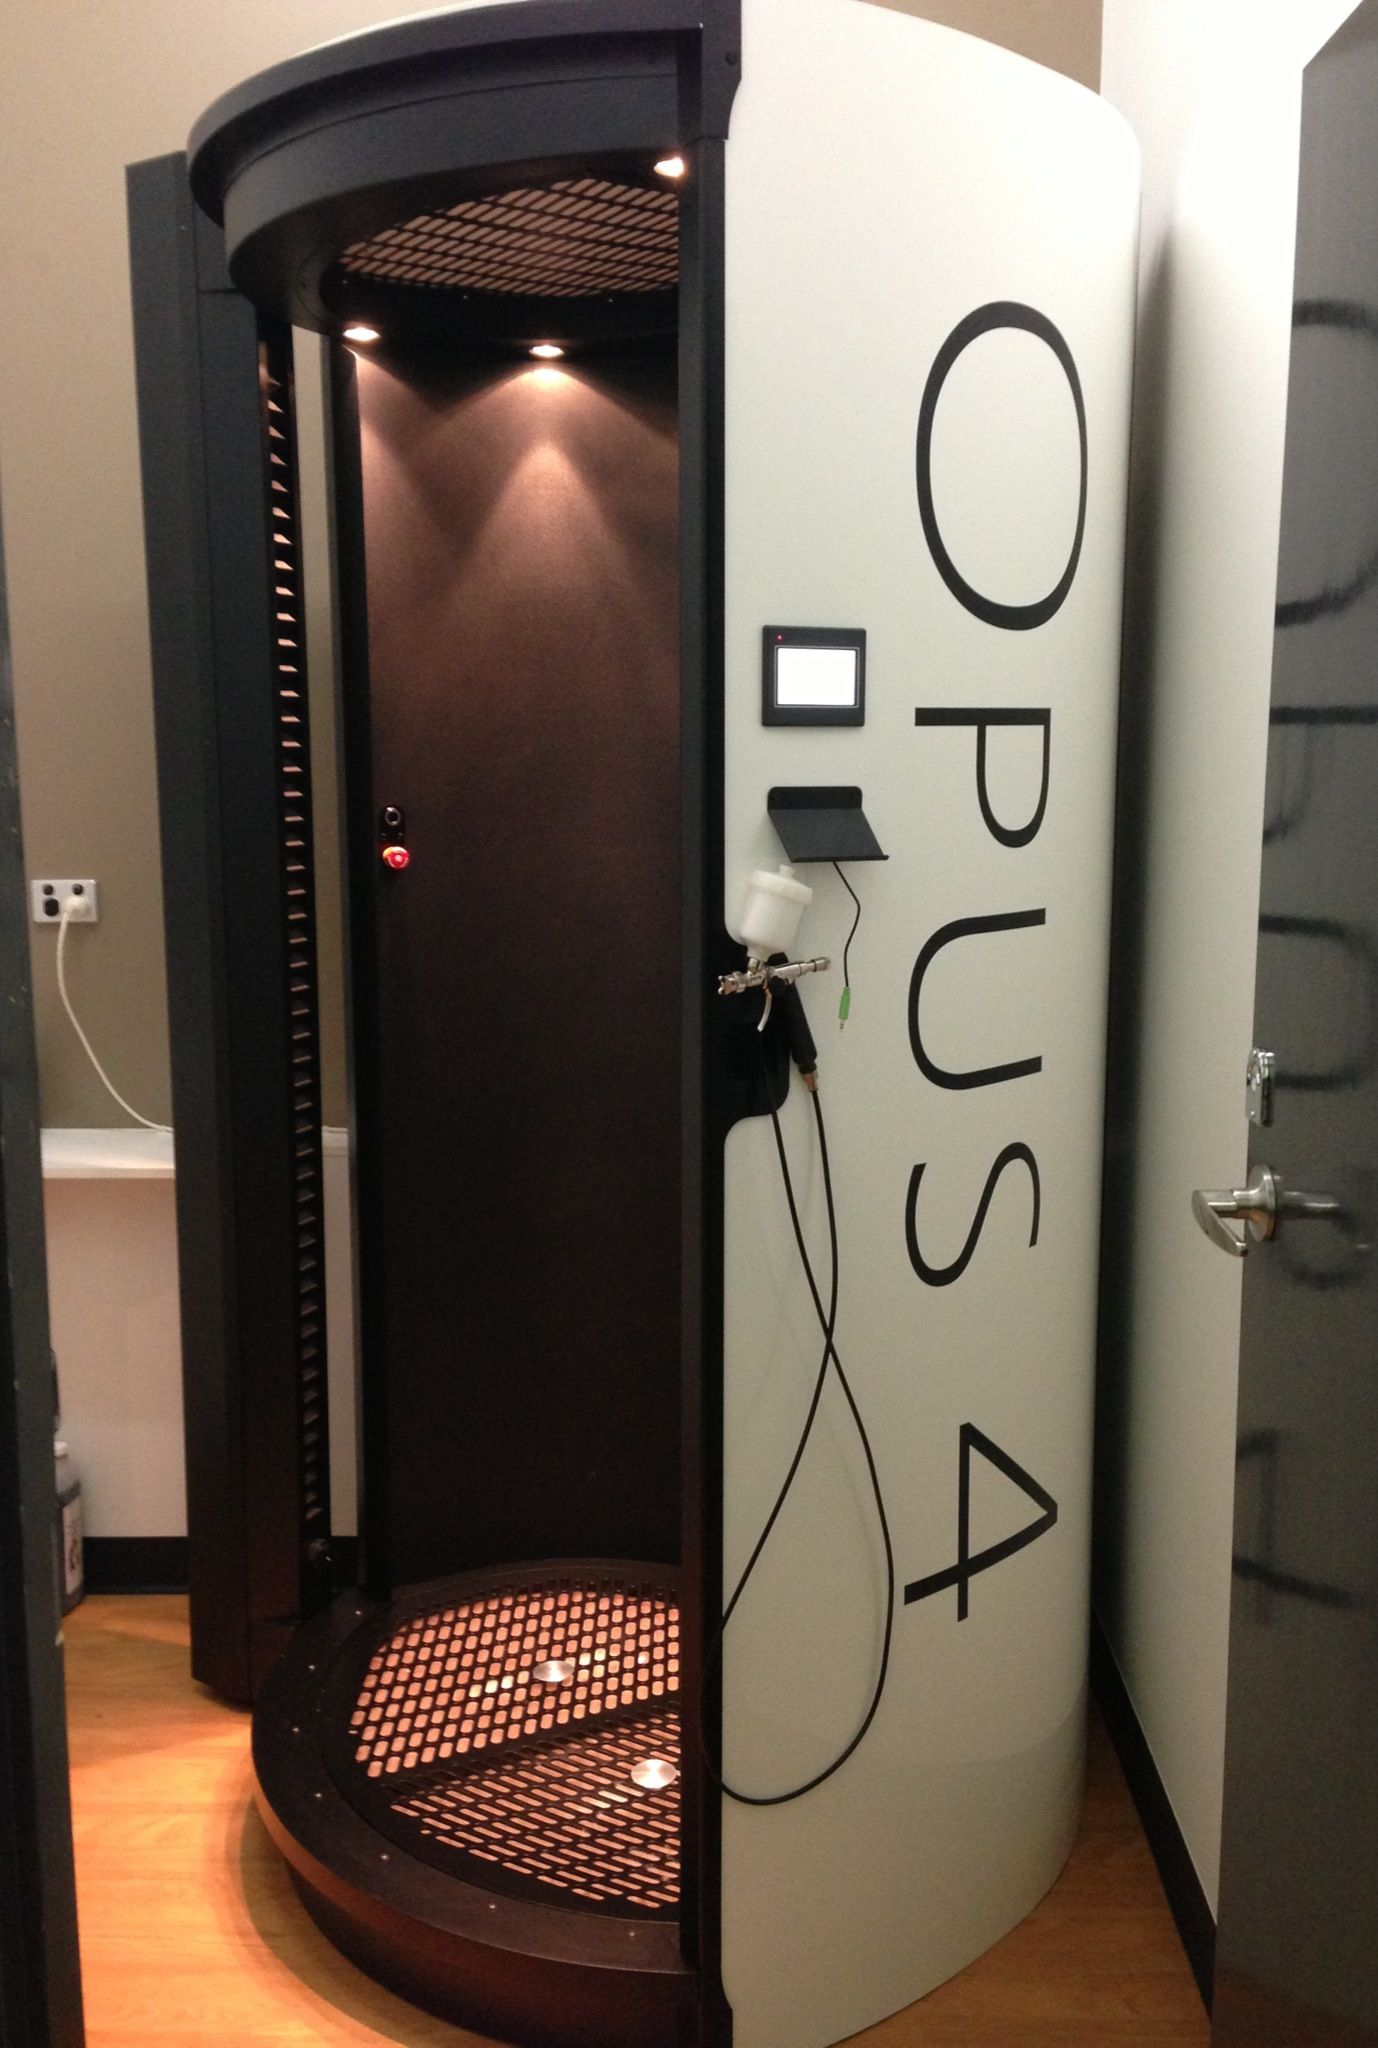 OPUS 24 Automatic Spray Tan Booth at Fuze Hair & Beauty, Ipswich